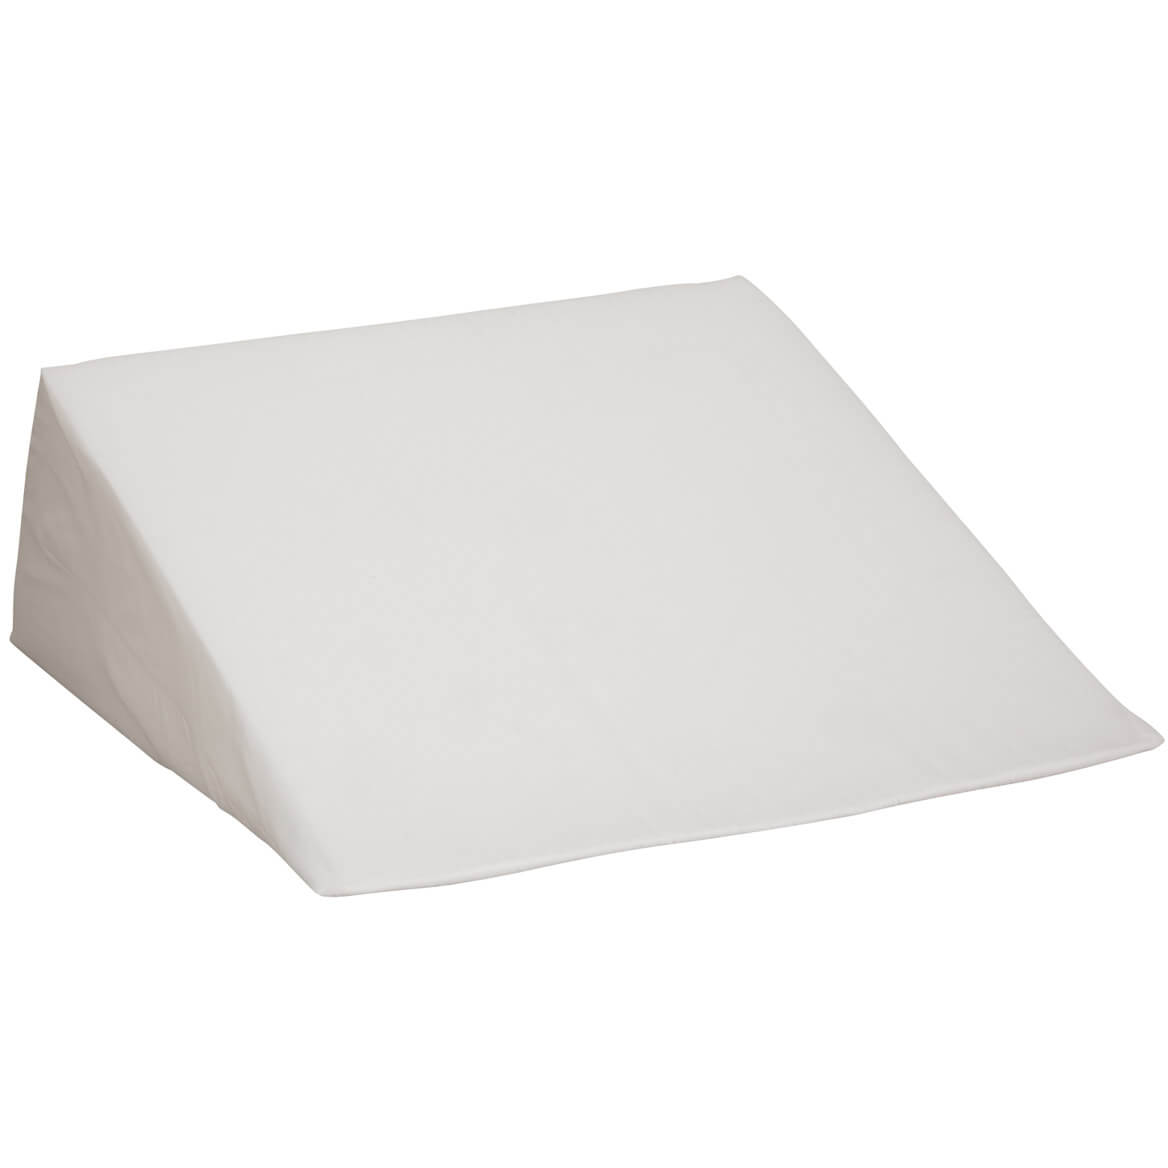 Wedge Support Pillow by LivingSURE™         XL-345523